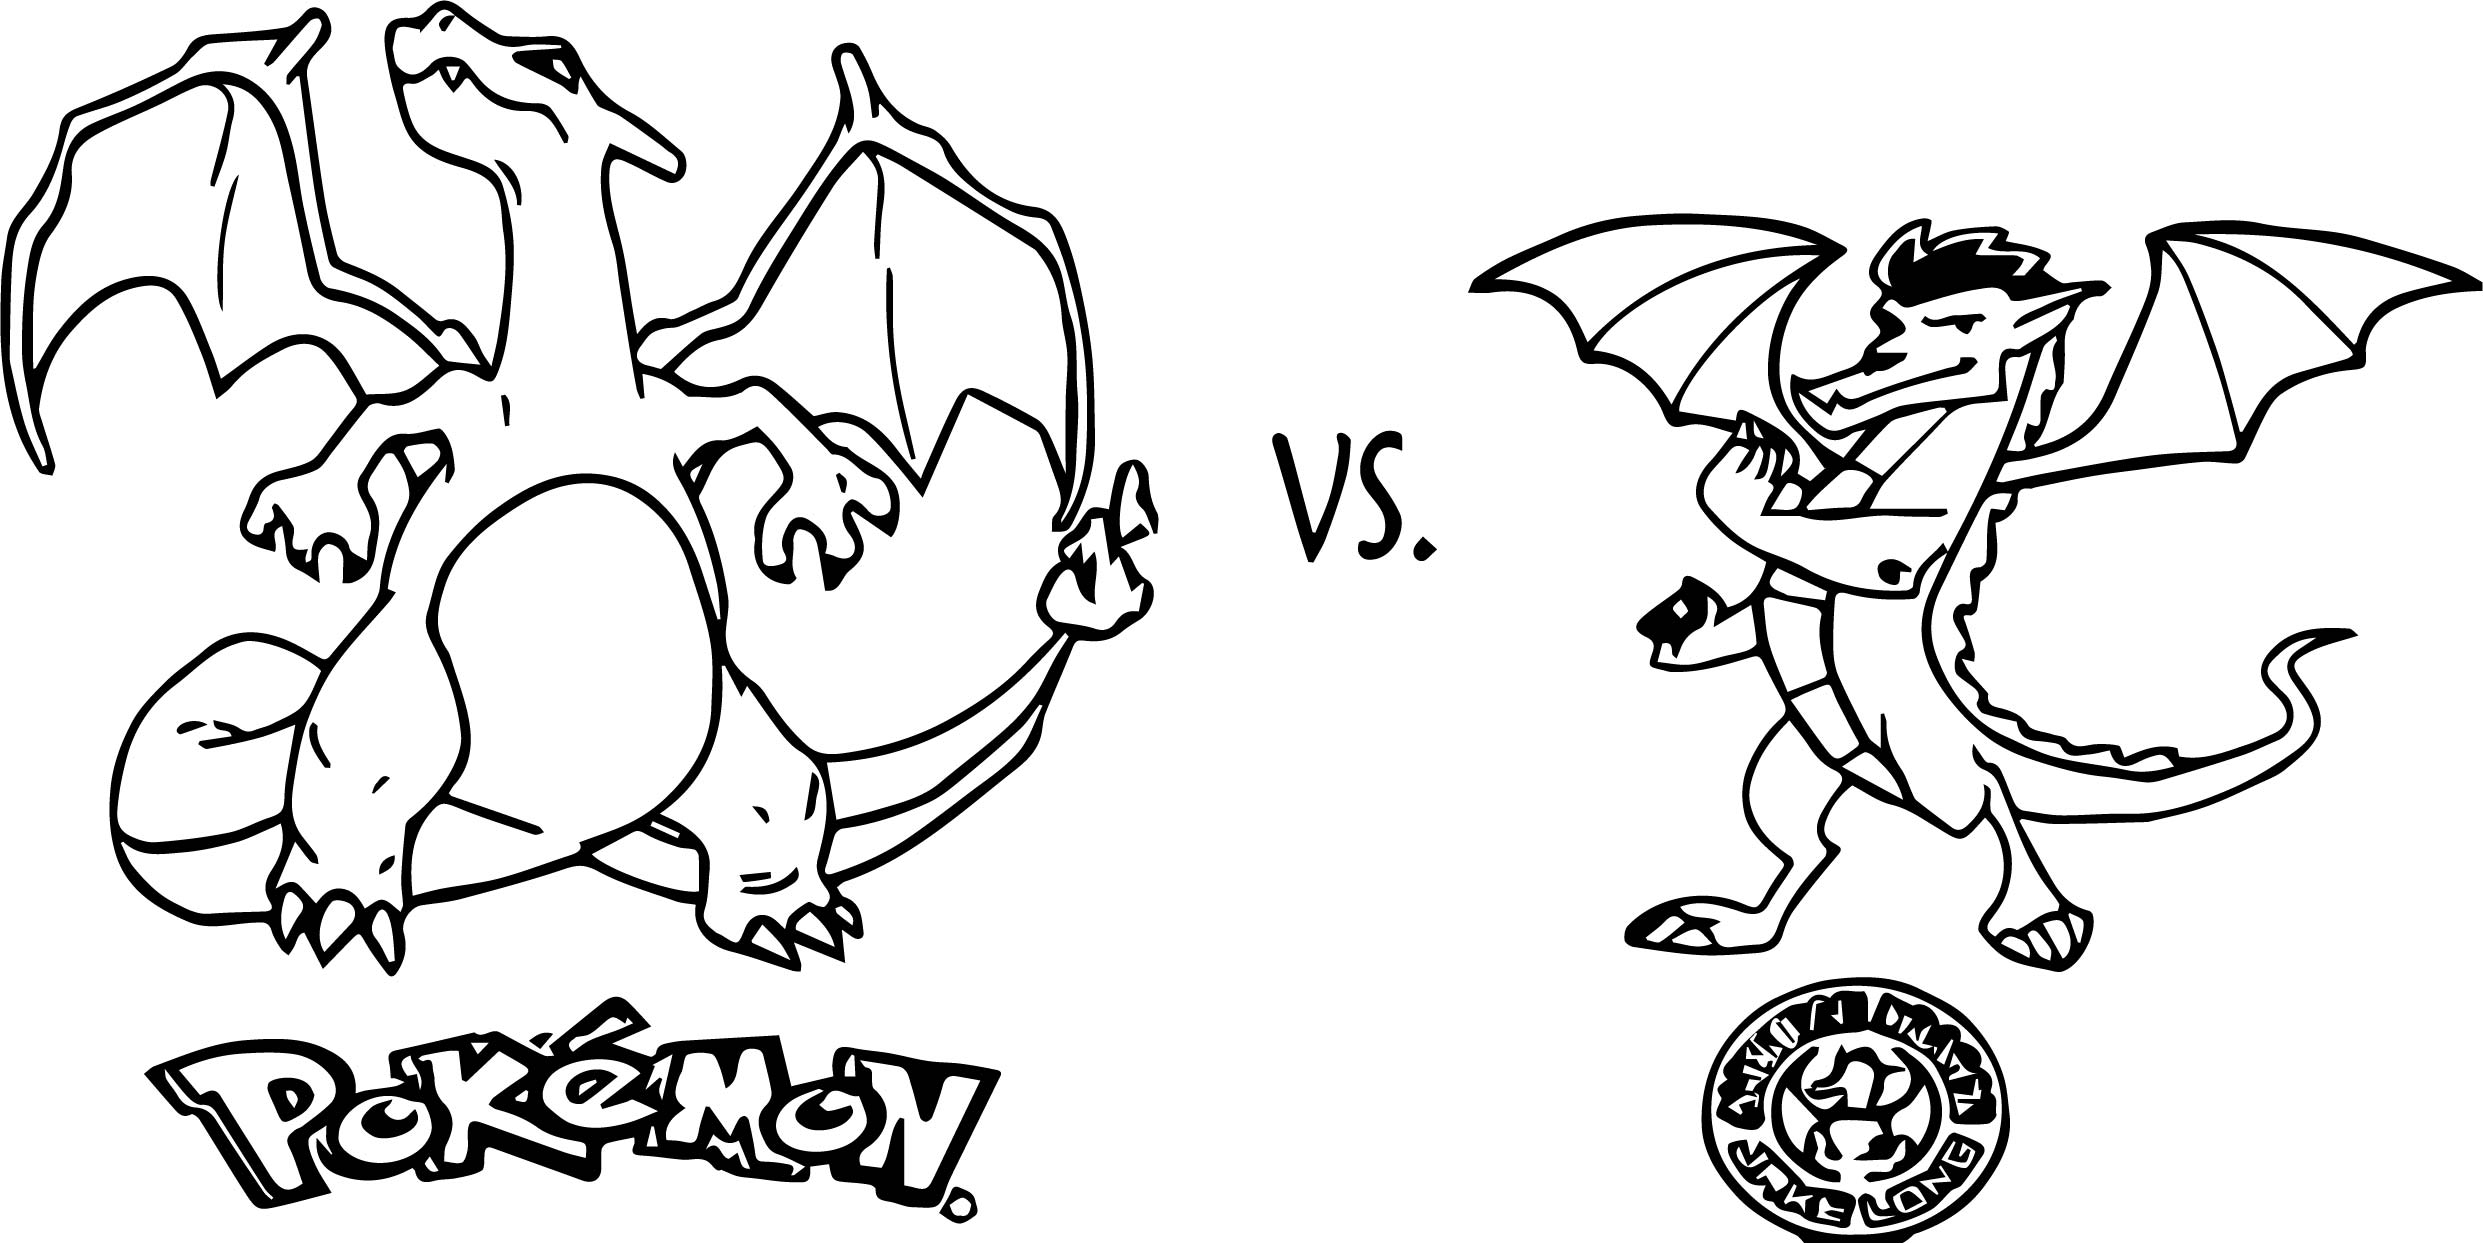 charizard vs american dragon jake long coloring page wecoloringpage